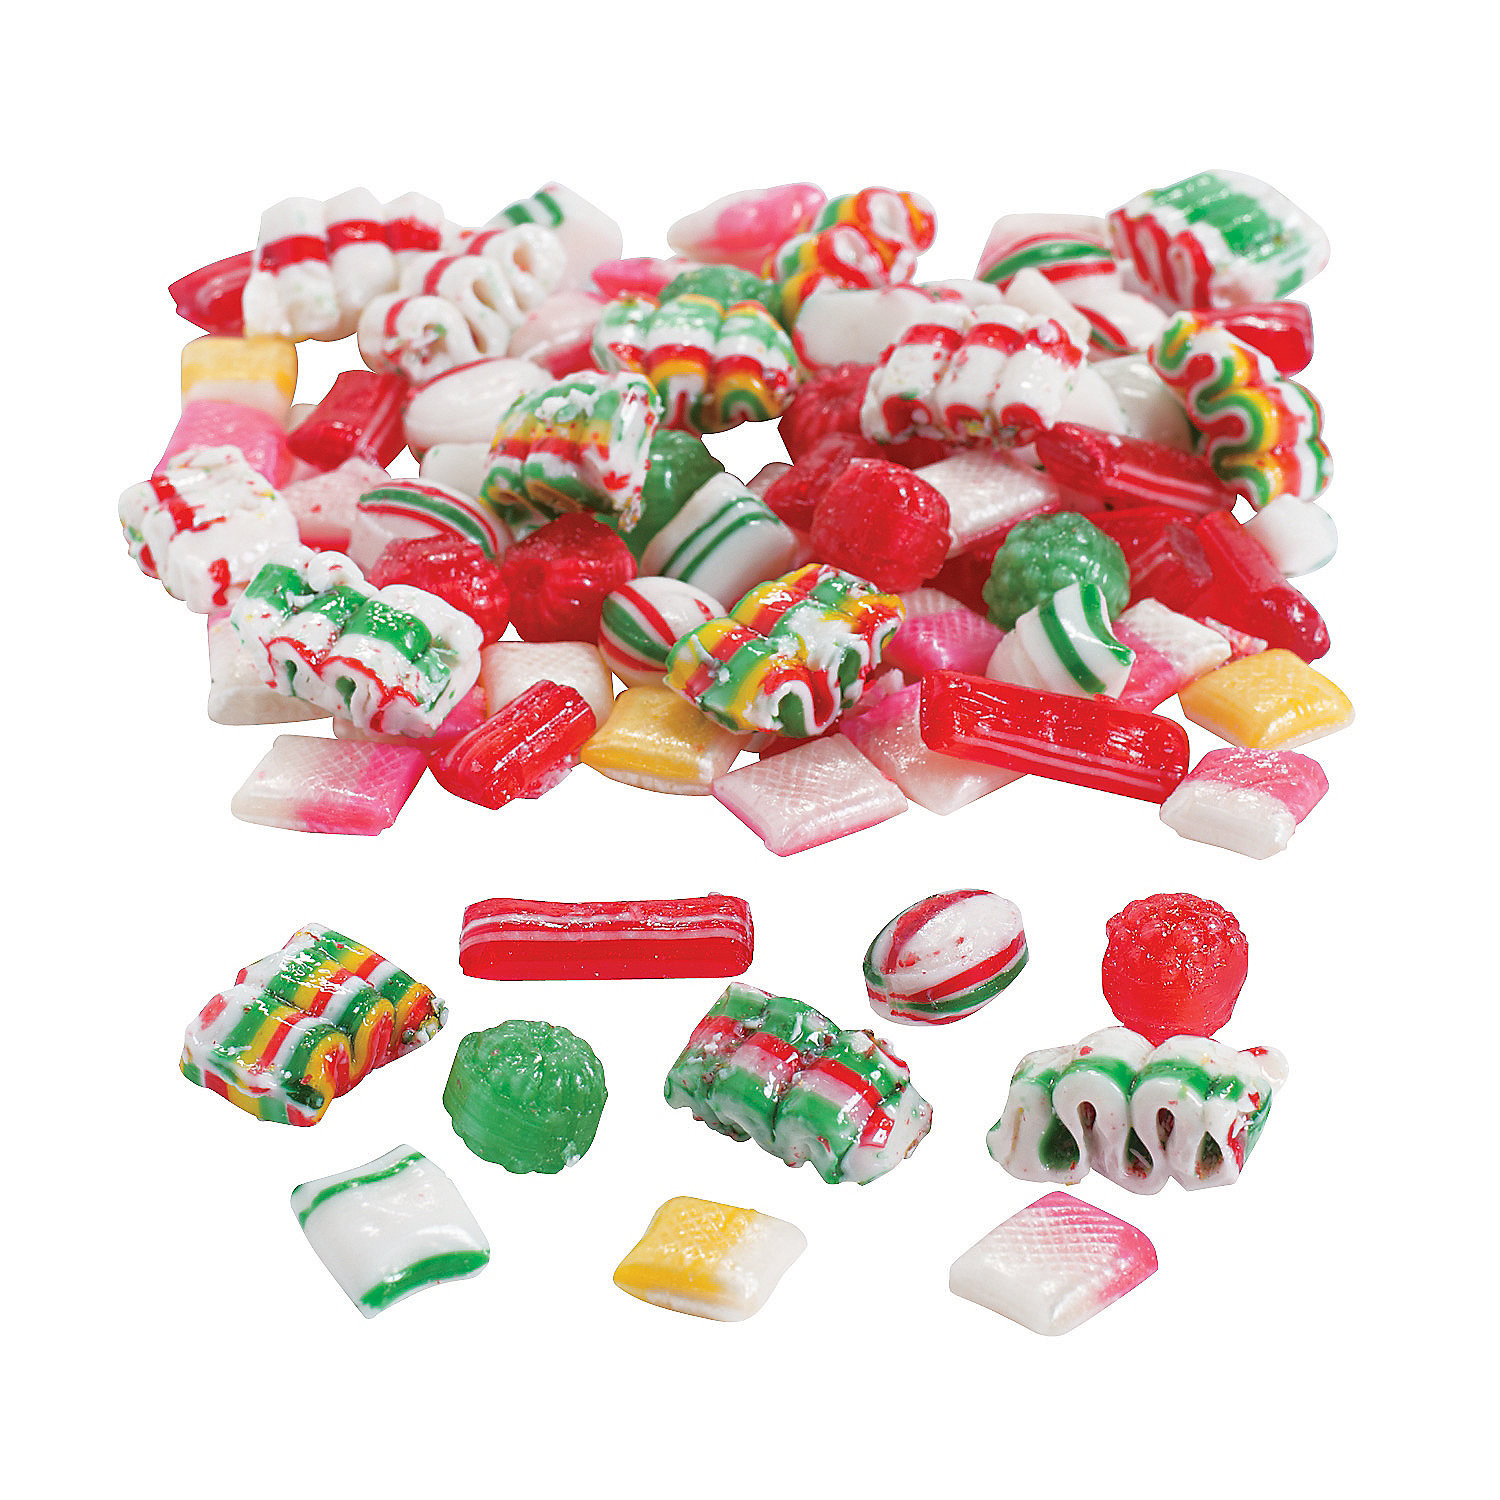 Christmas Candy Mix  Brach's Holiday Old Fashioned Candy Mix Oriental